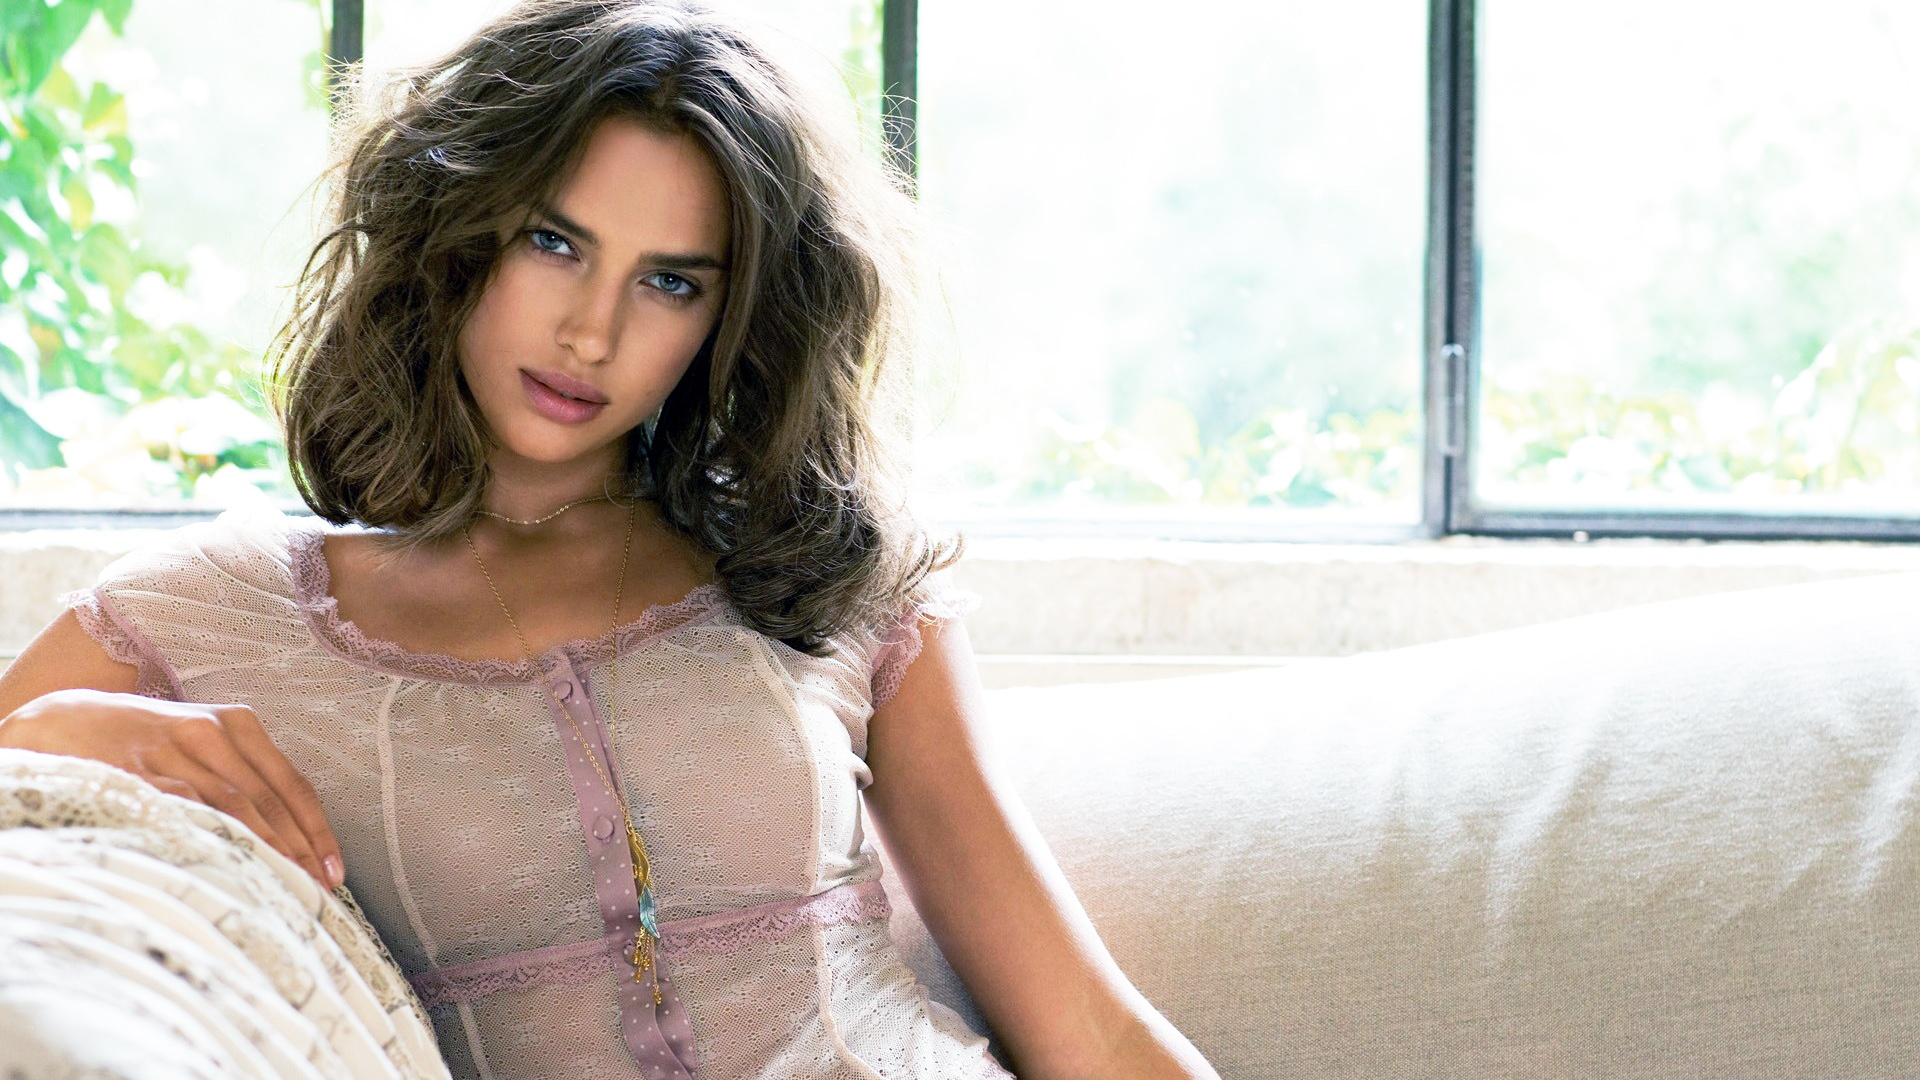 irina shayk wallpapers hd a3 - hd desktop wallpapers | 4k hd